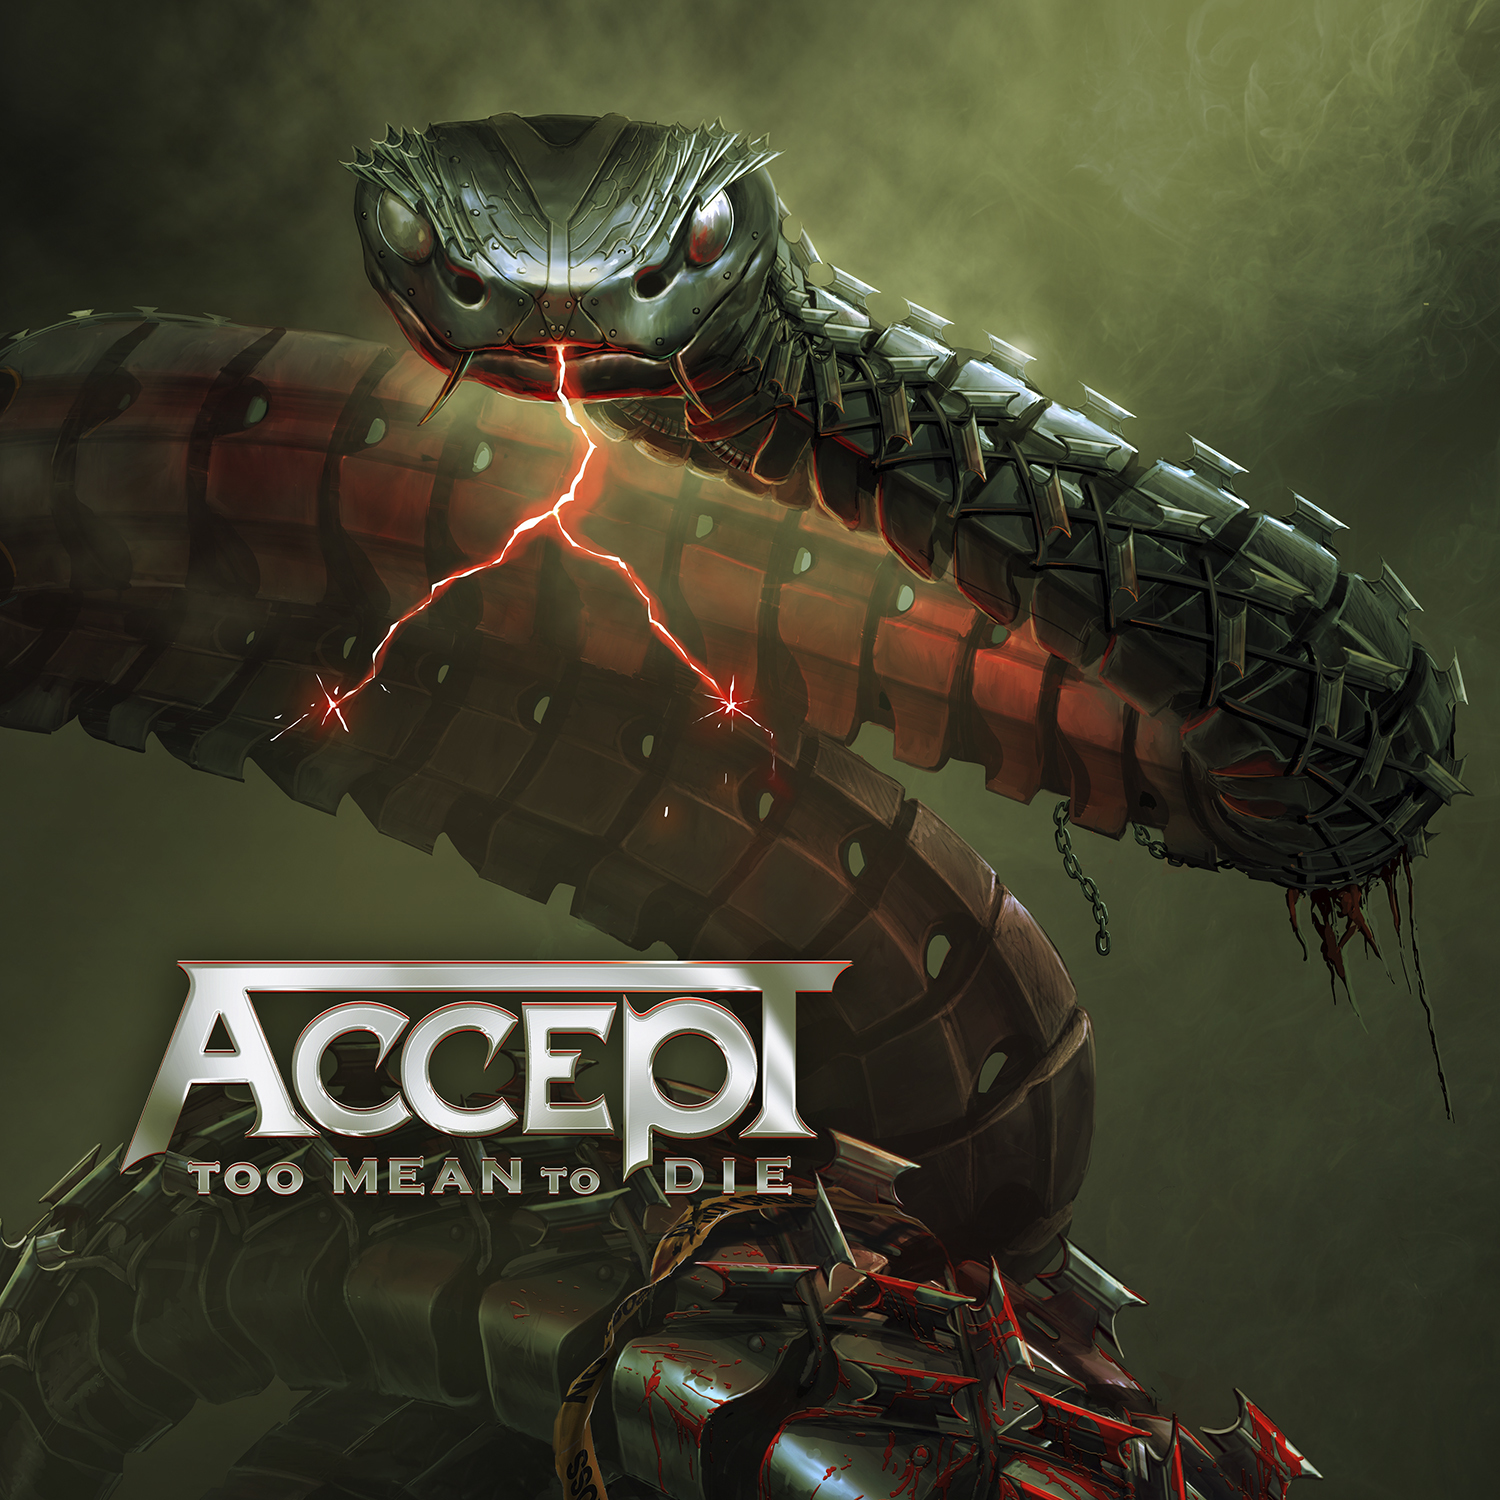 accept-too-mean-to-die-review-zum-neuen-album-der-deutschen-metallegende